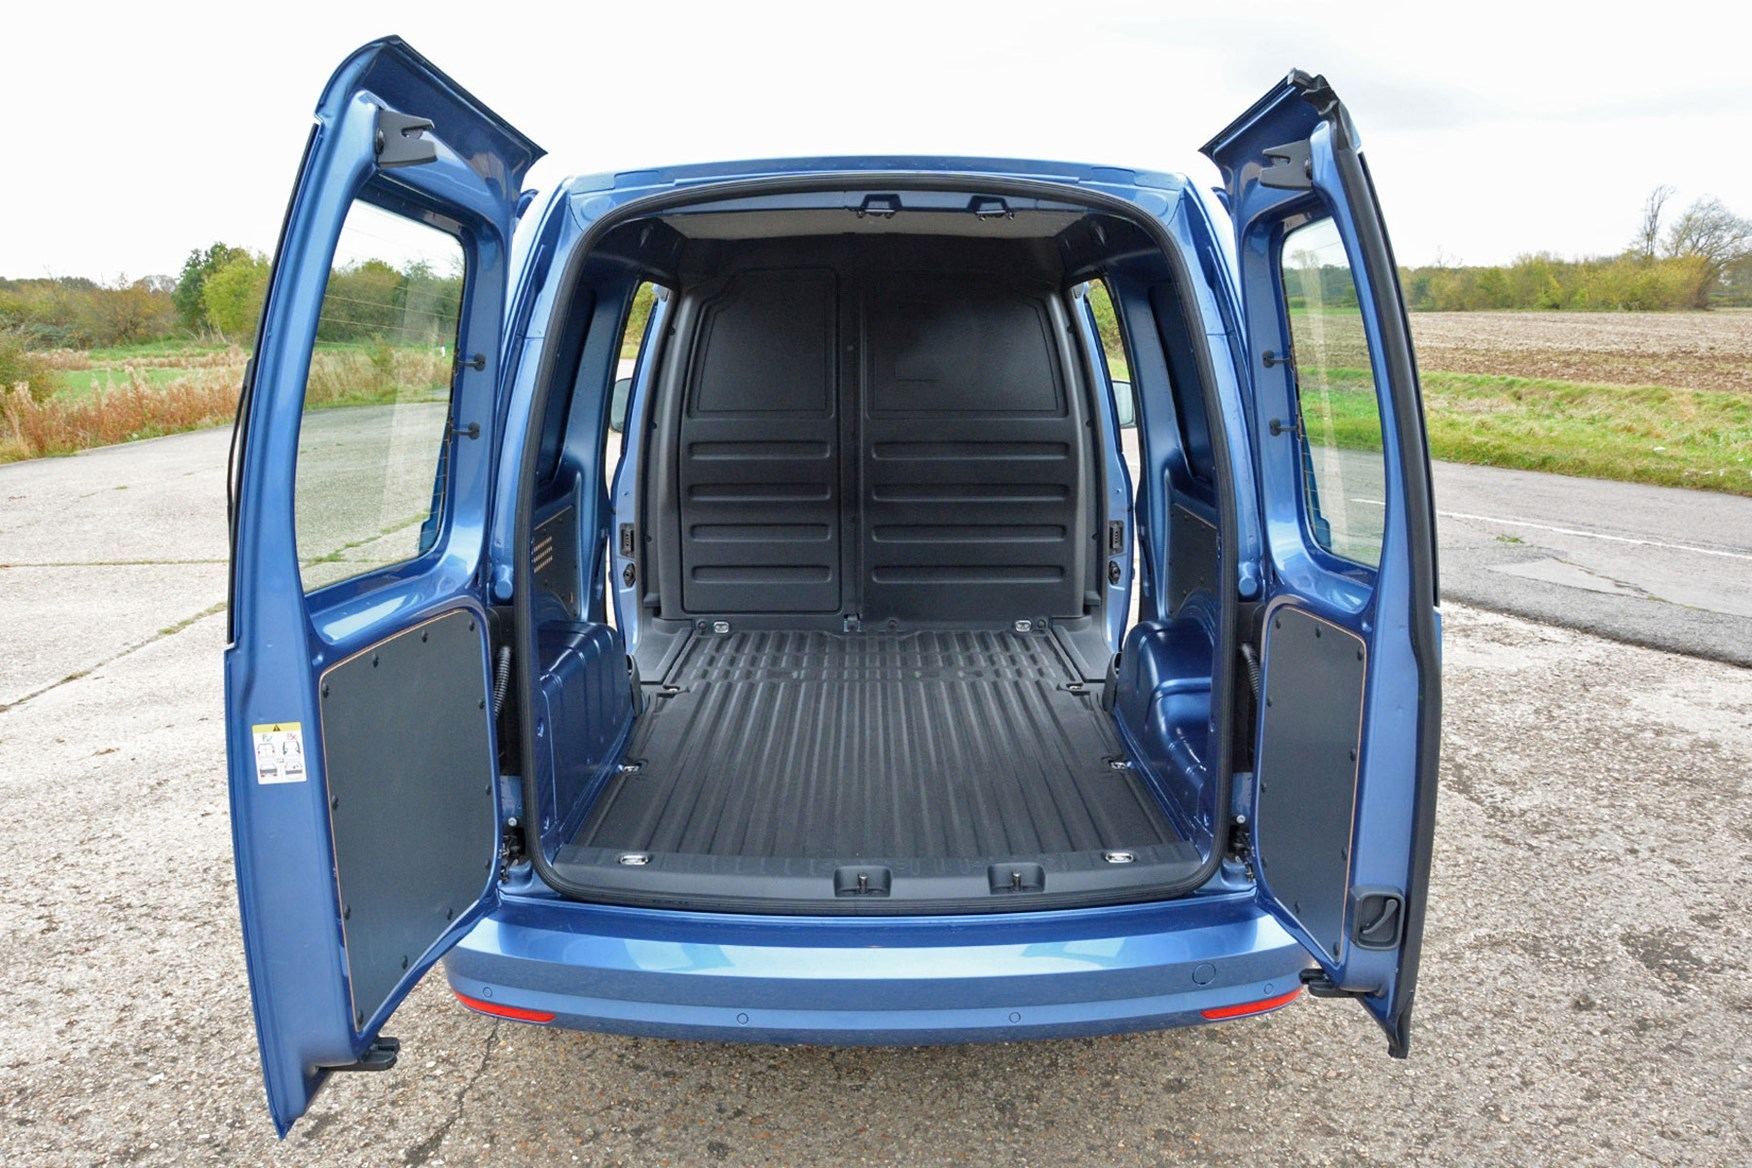 Volkswagen Caddy Van Dimensions 2015 On Capacity Payload Volume Towing Parkers